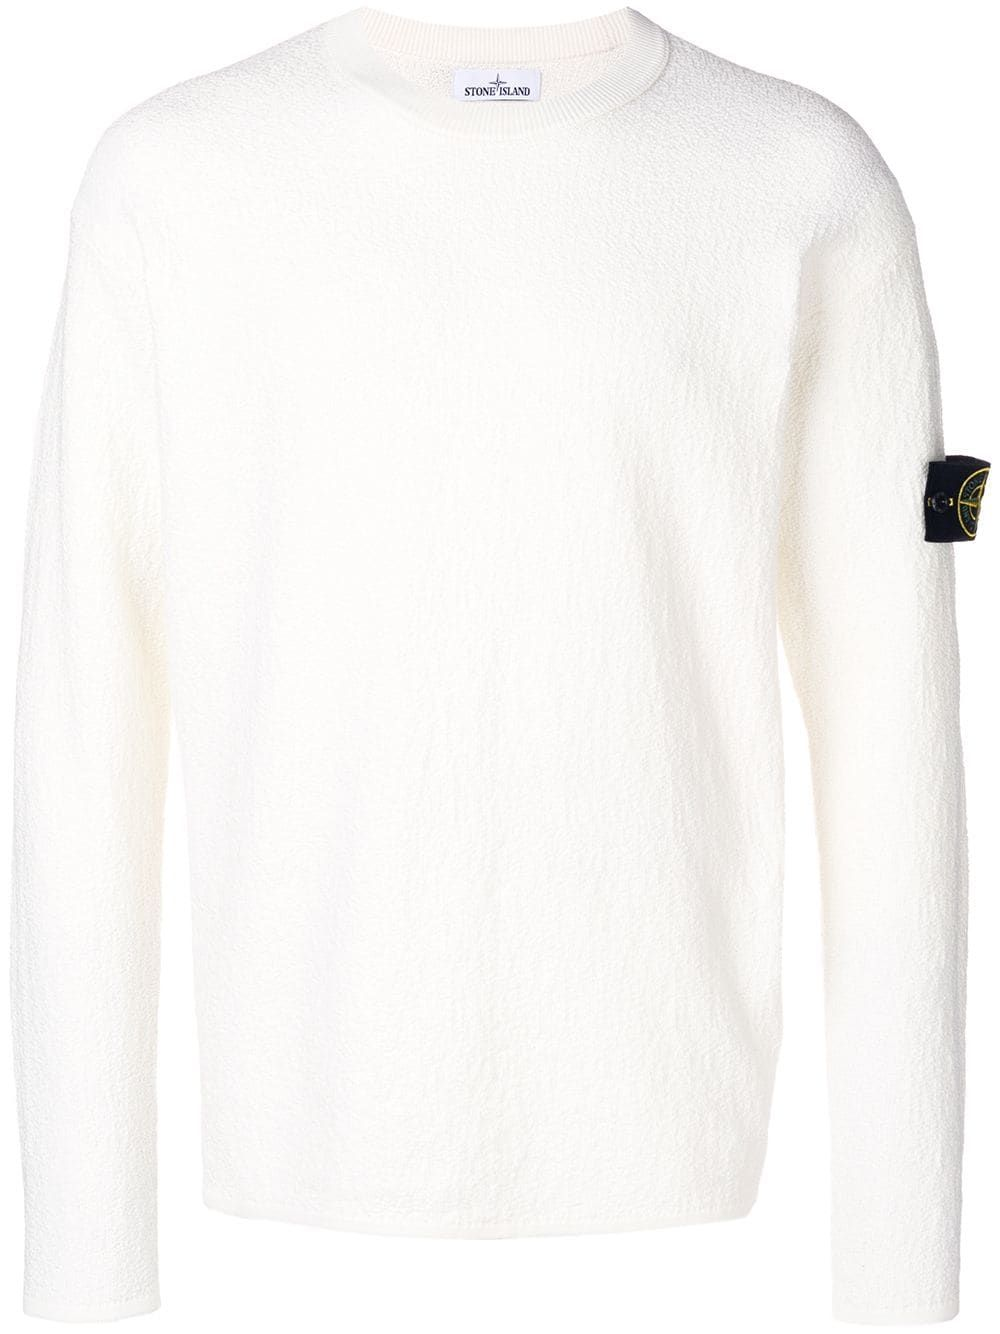 Stone Island Gestrickter Pullover Weiss In White Textured Knit Sweater Textured Knit Knitted Sweaters